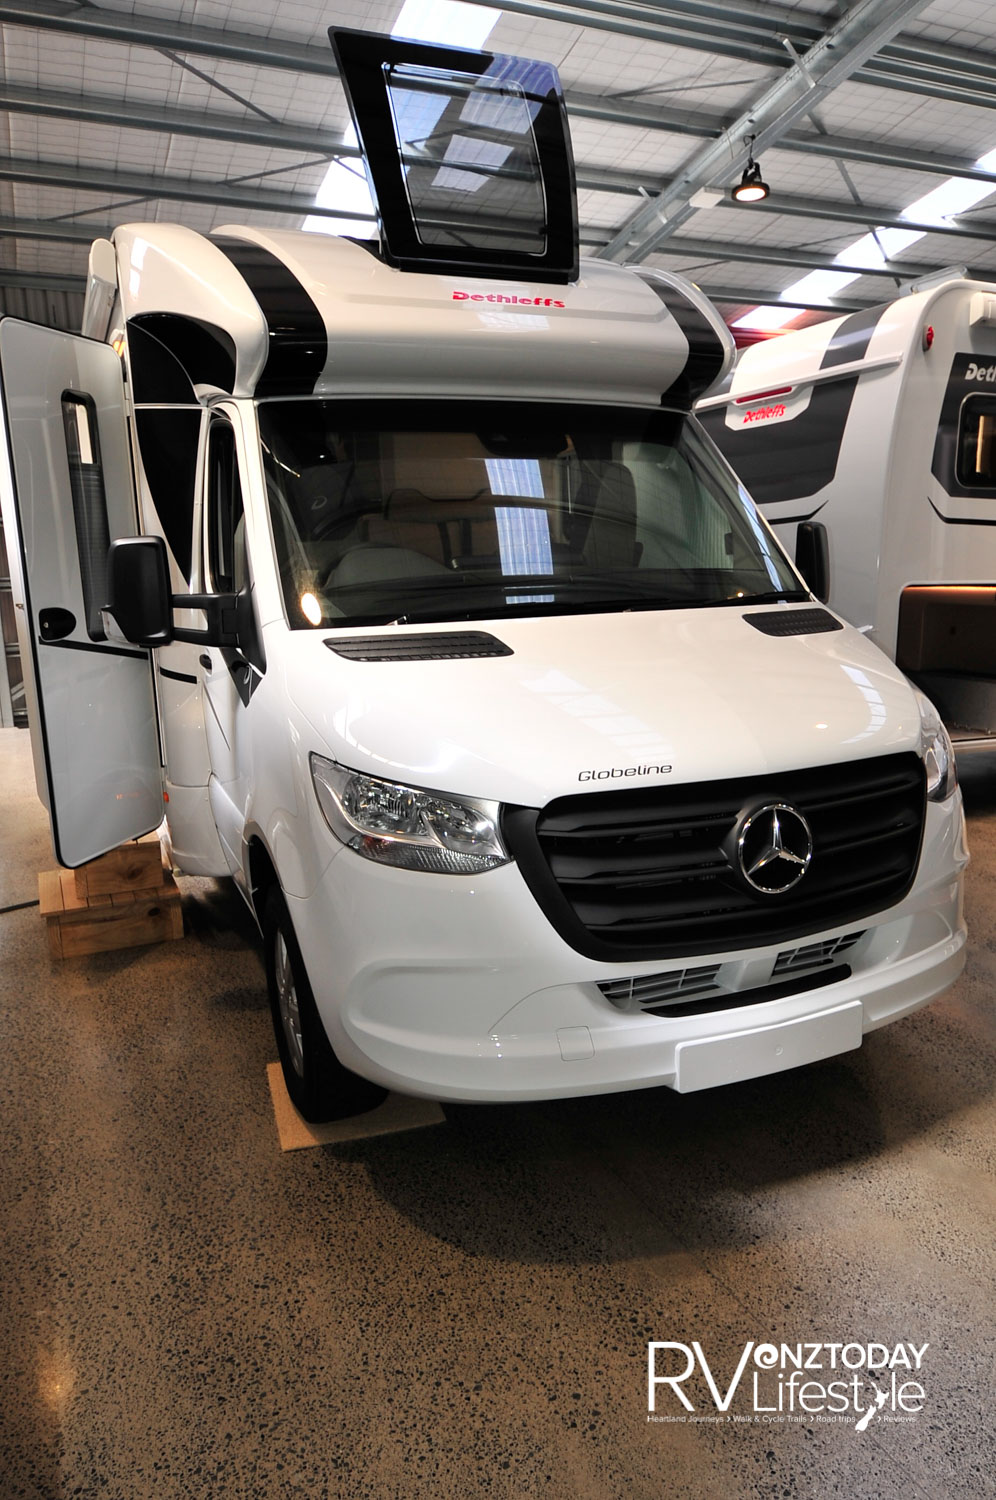 Mercedes-Benz Sprinter 414 CDI Euro VI D engine (105kW/141bhp) 7G-Tronic Plus auto transmission. Mercedes ladder-frame chassis